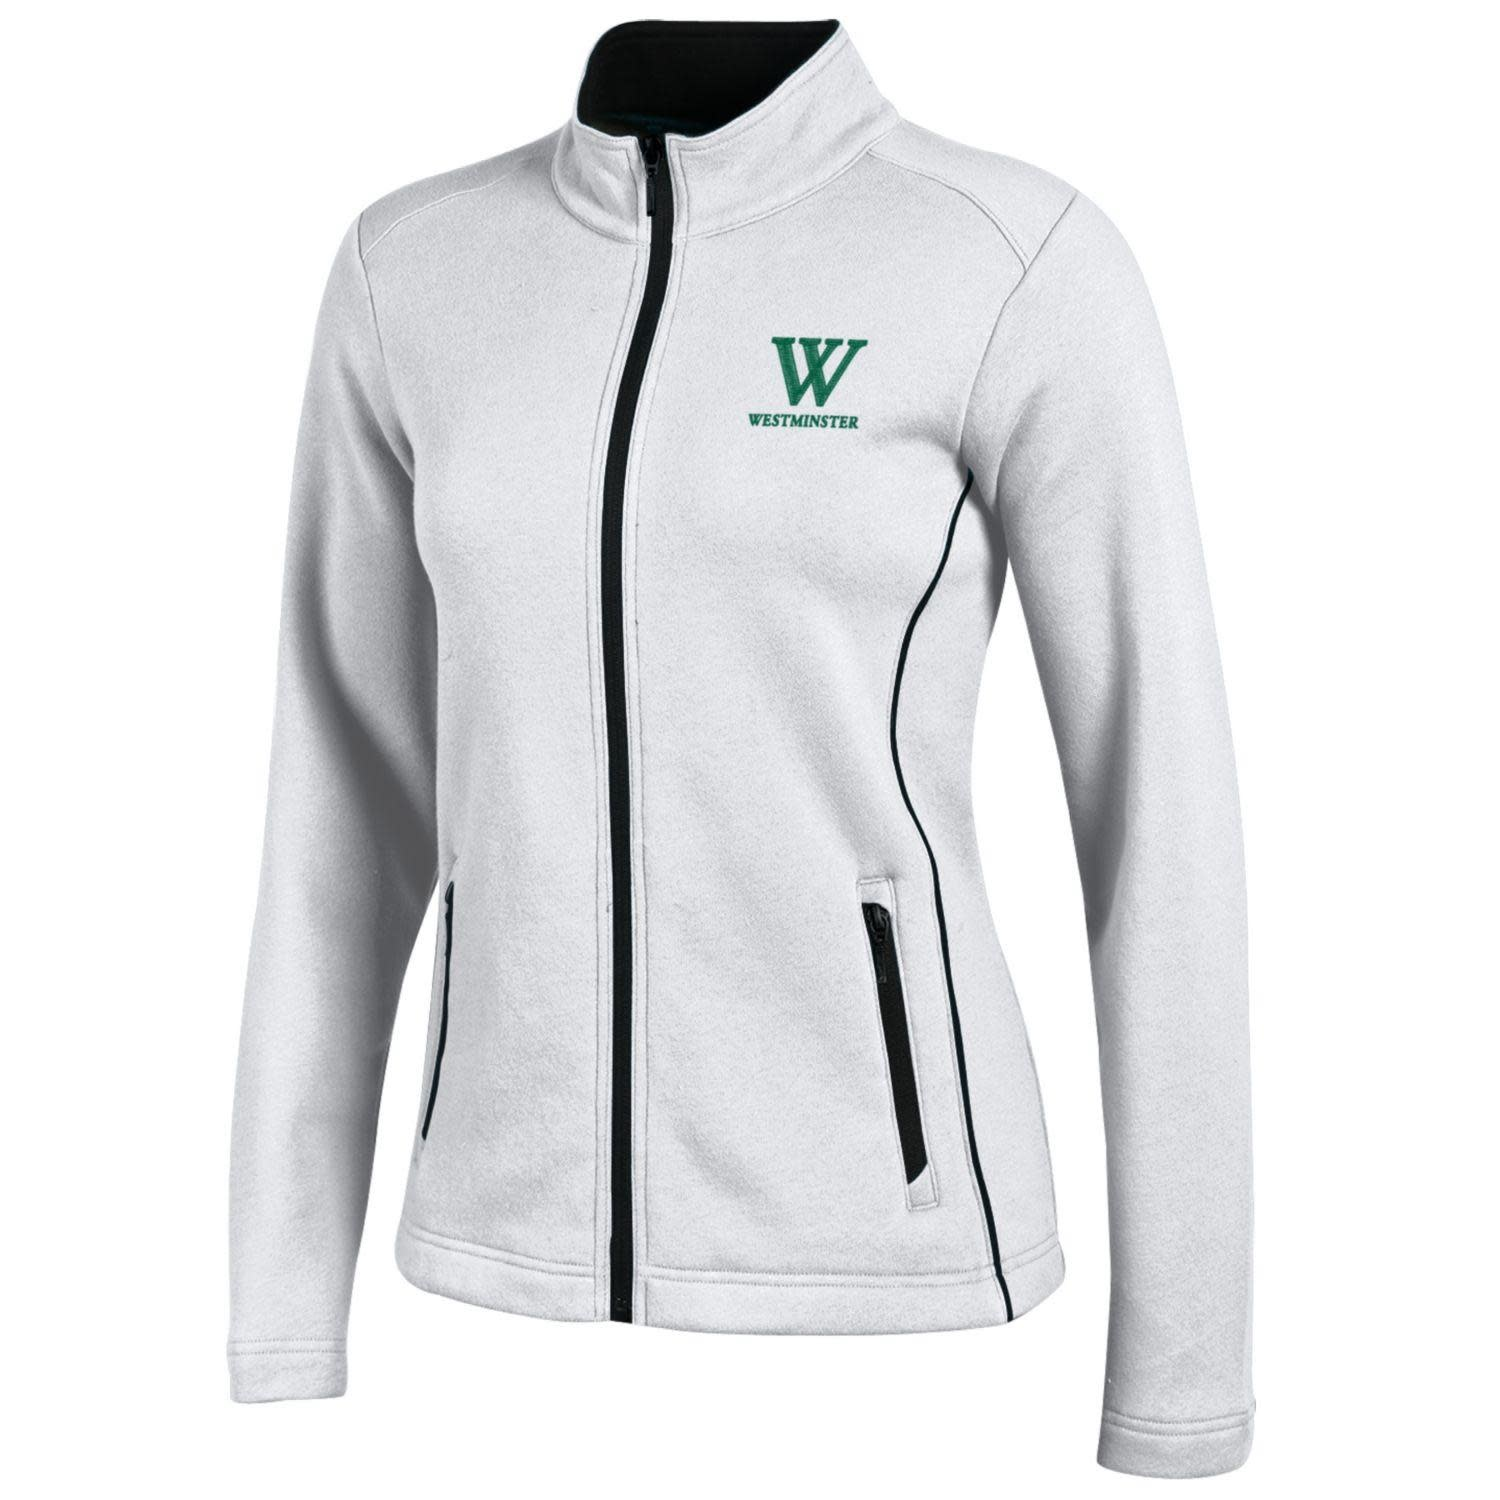 Under Armour Jacket: Gear for Sports Women's Deluxe Touch Full Zip